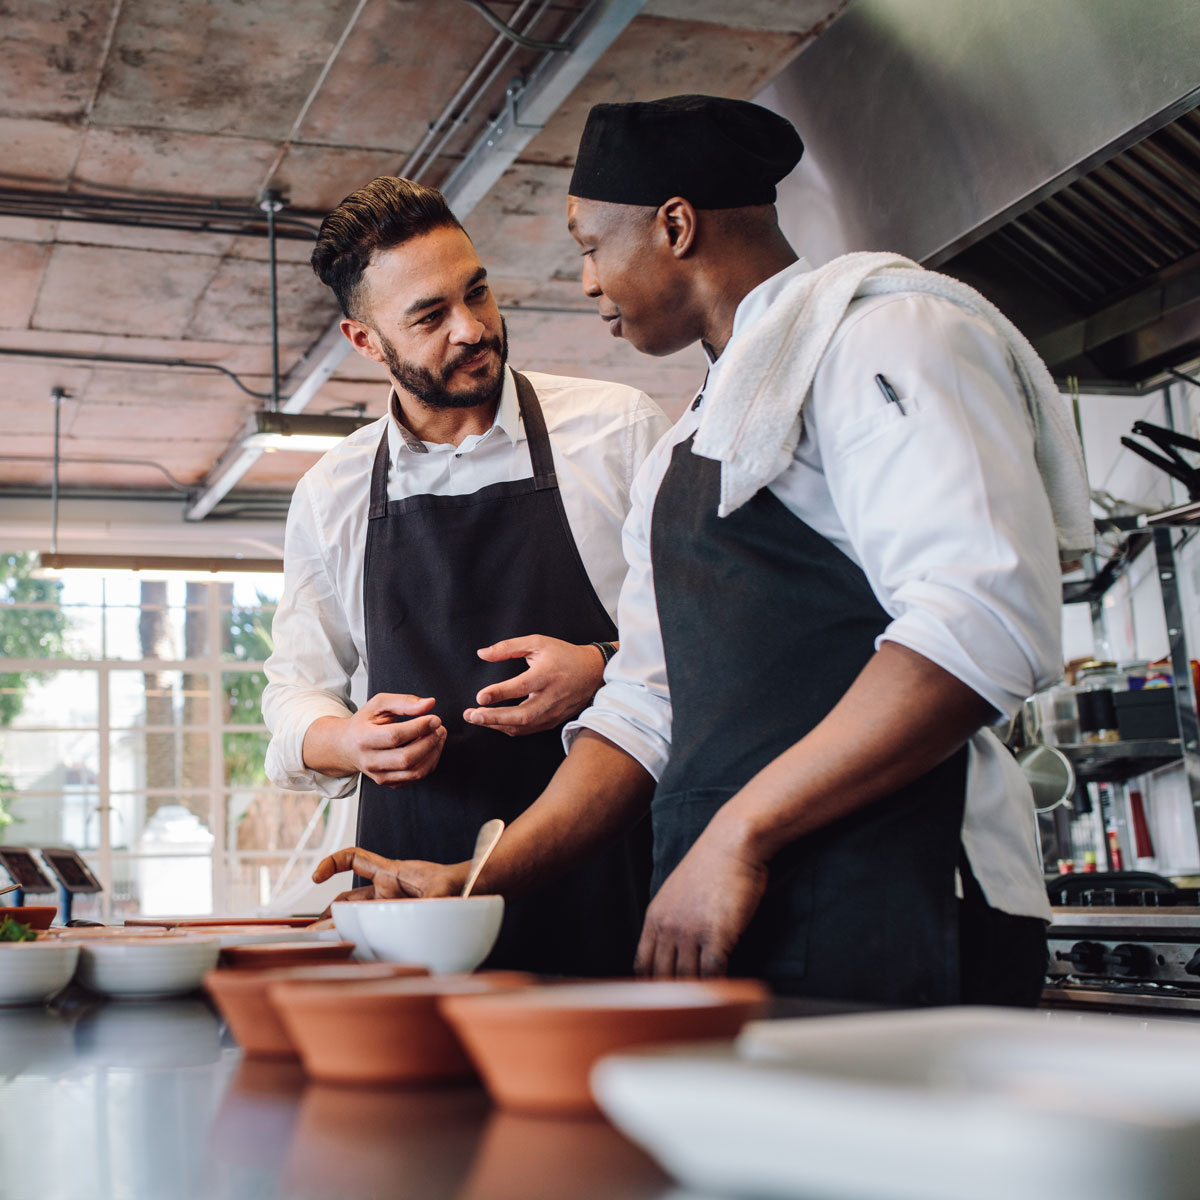 Business owner and chef working in kitchen